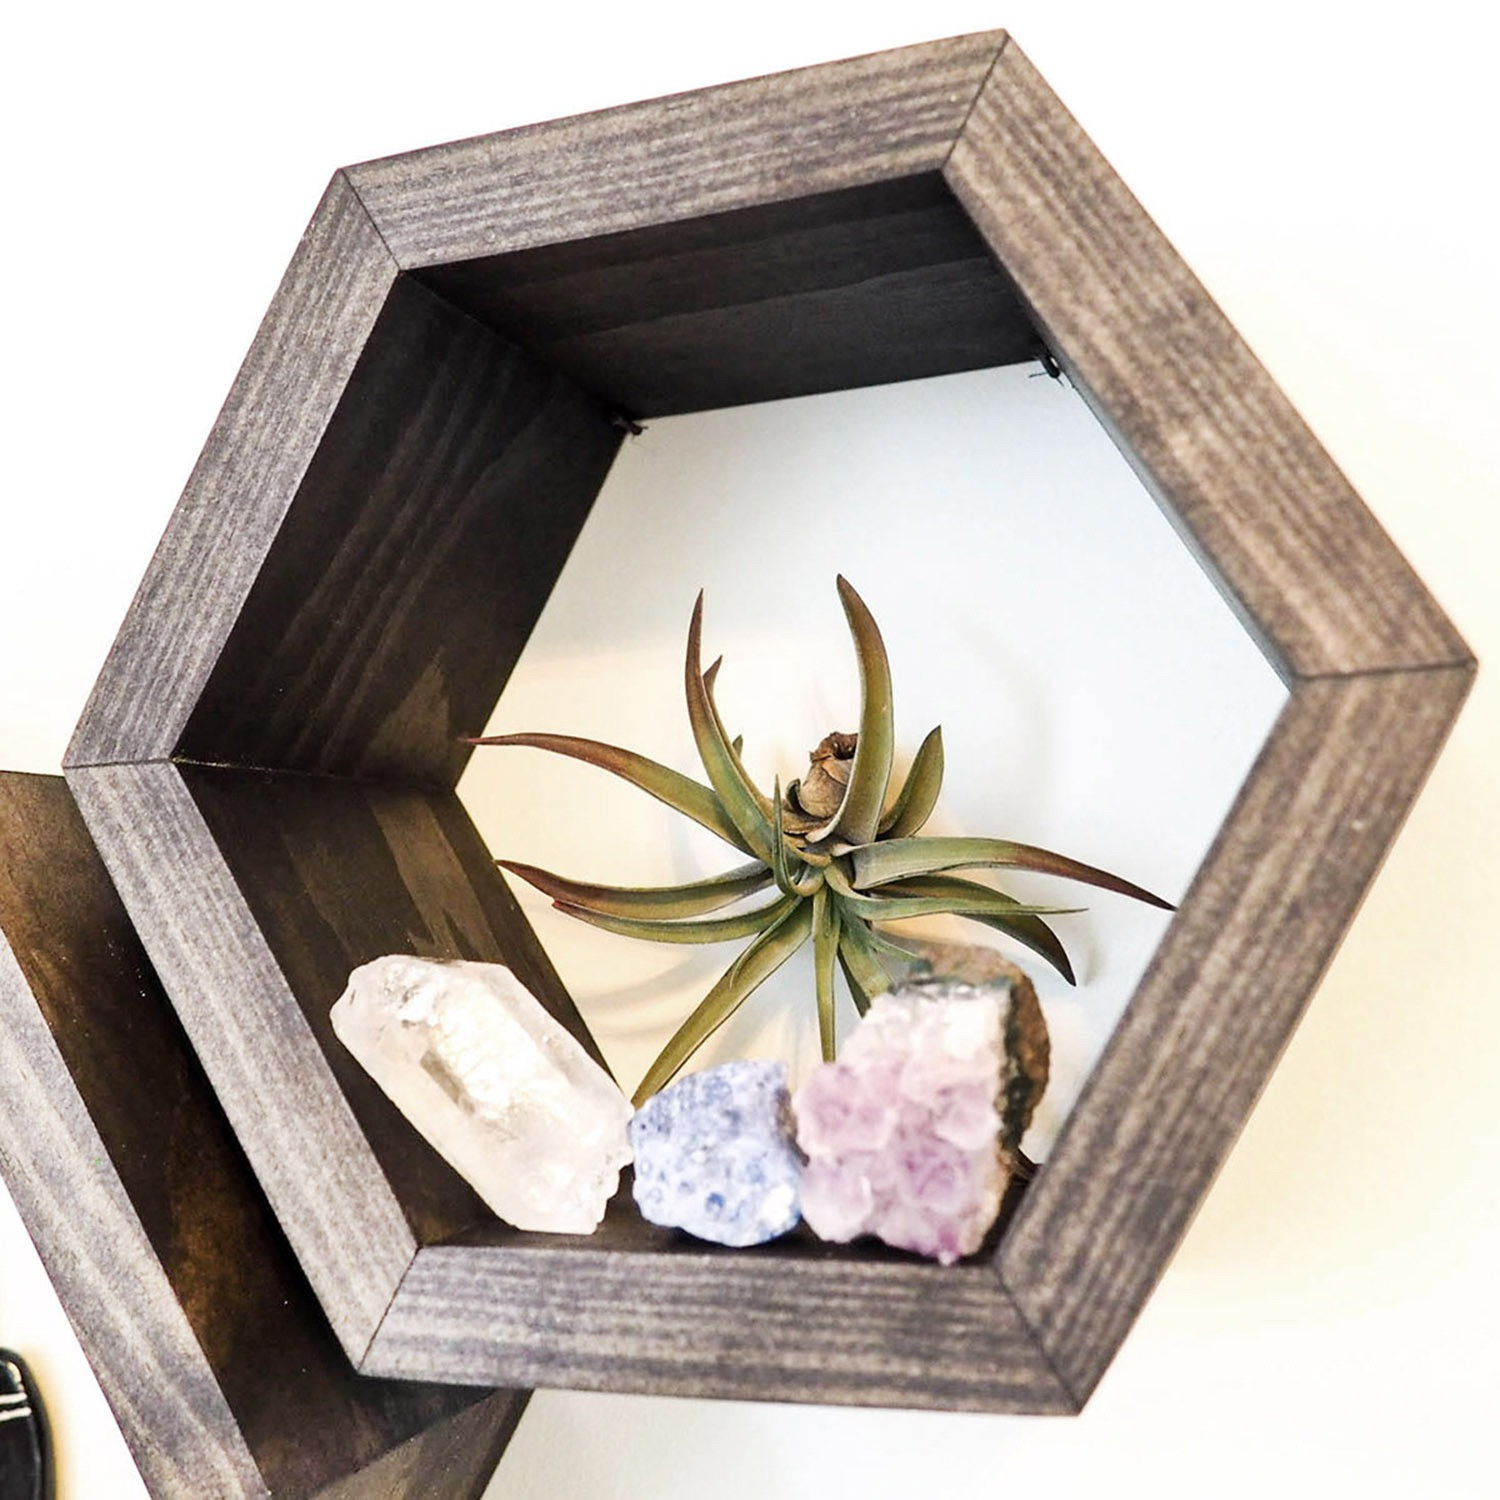 Set of 3 Wall Shelves | Spruce Wood